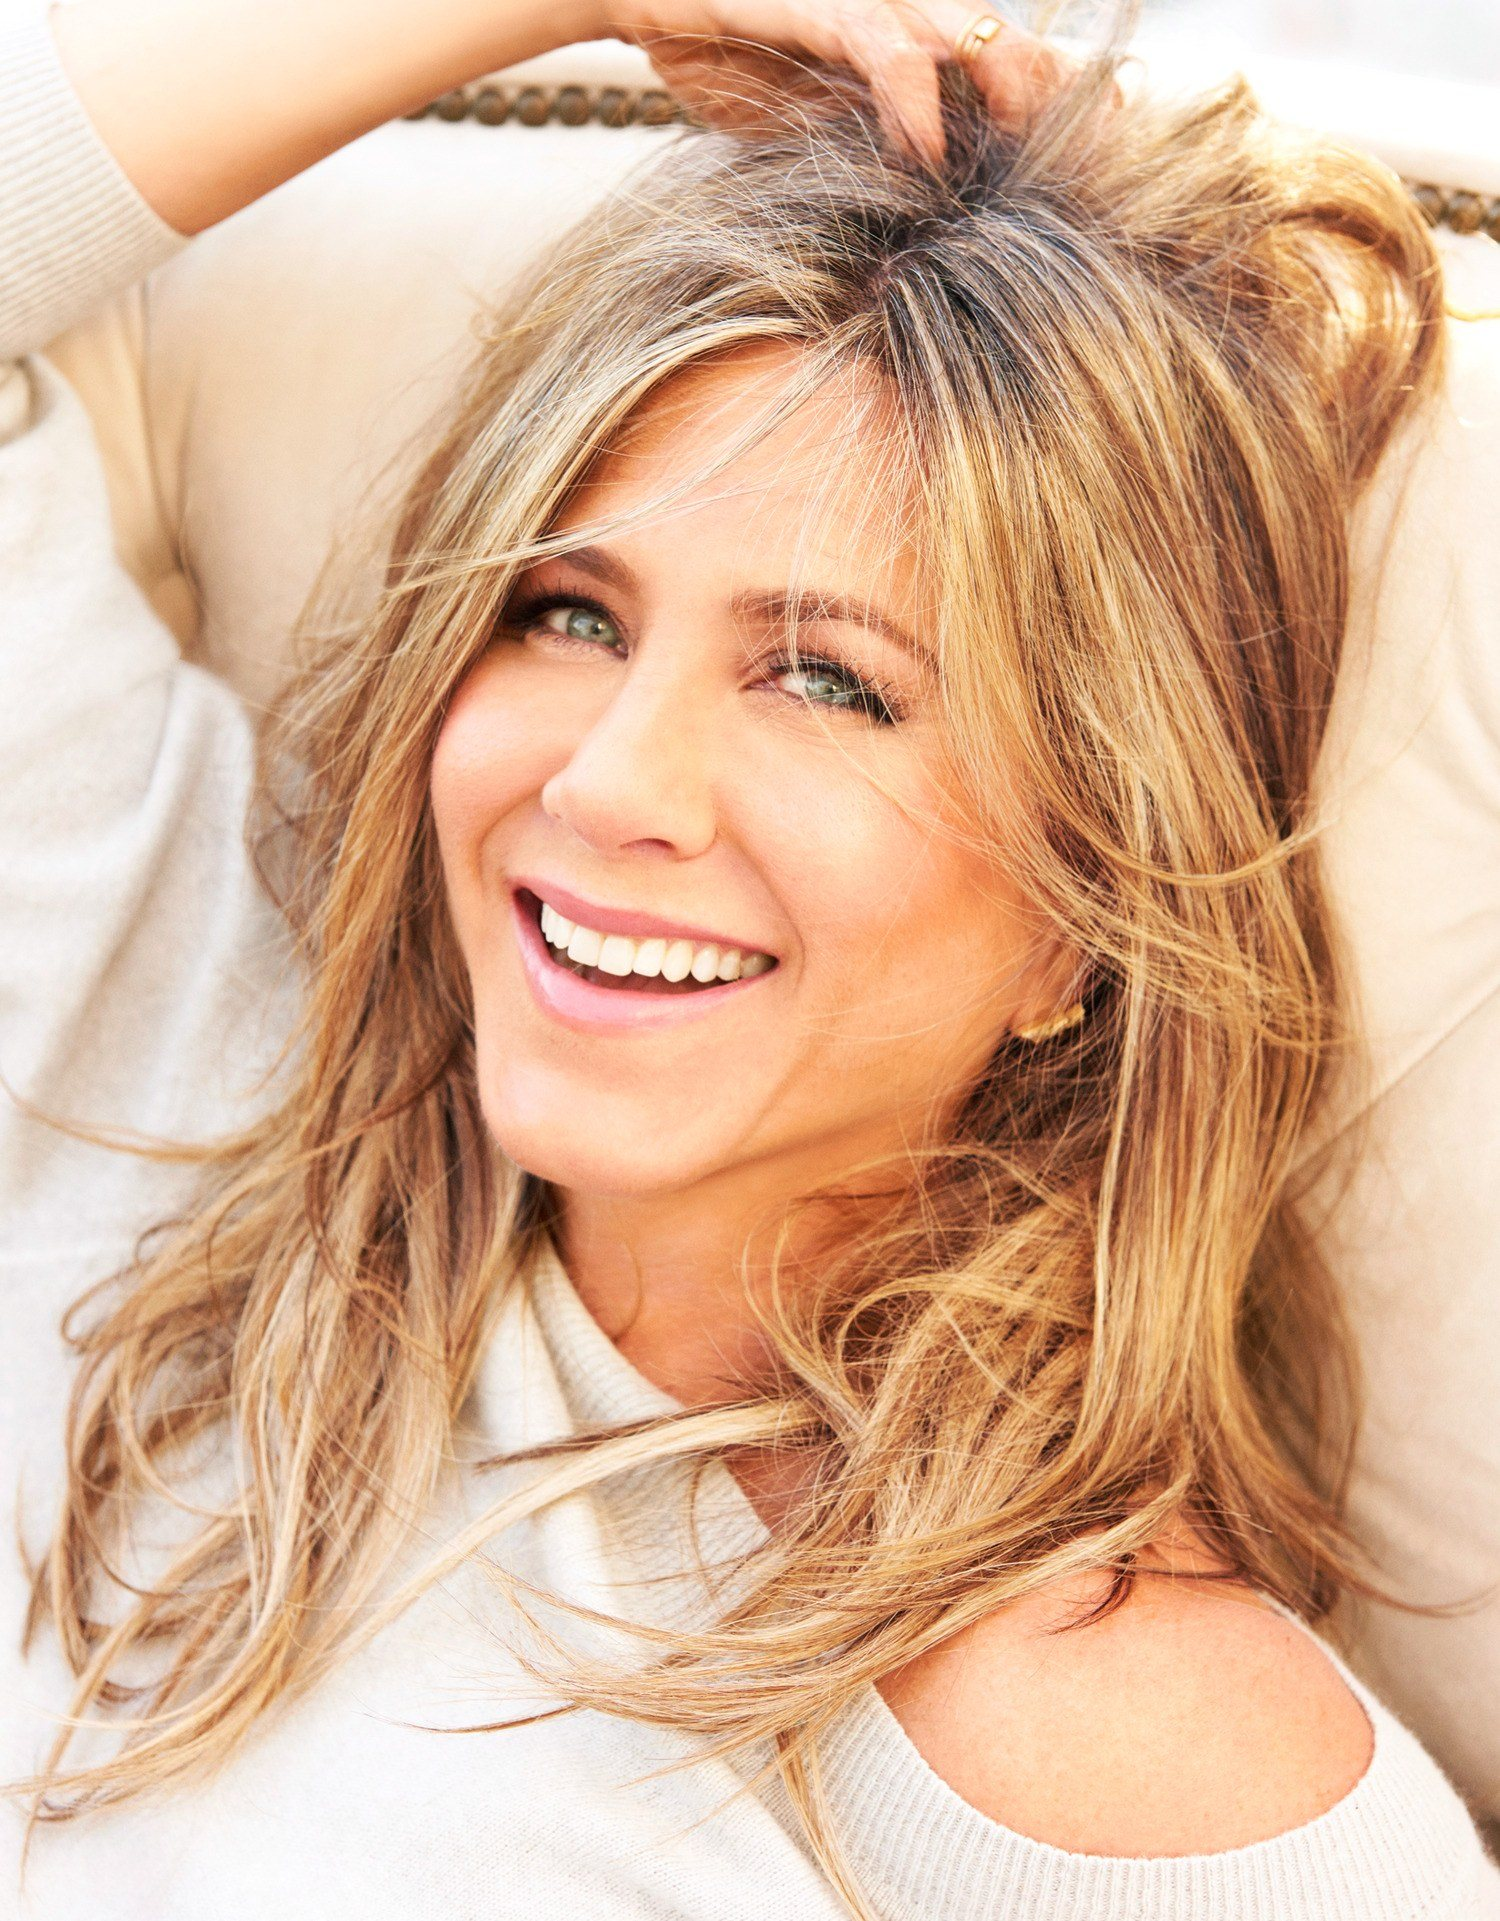 7 jen hair 1 20 Things You Never Knew About Jennifer Aniston